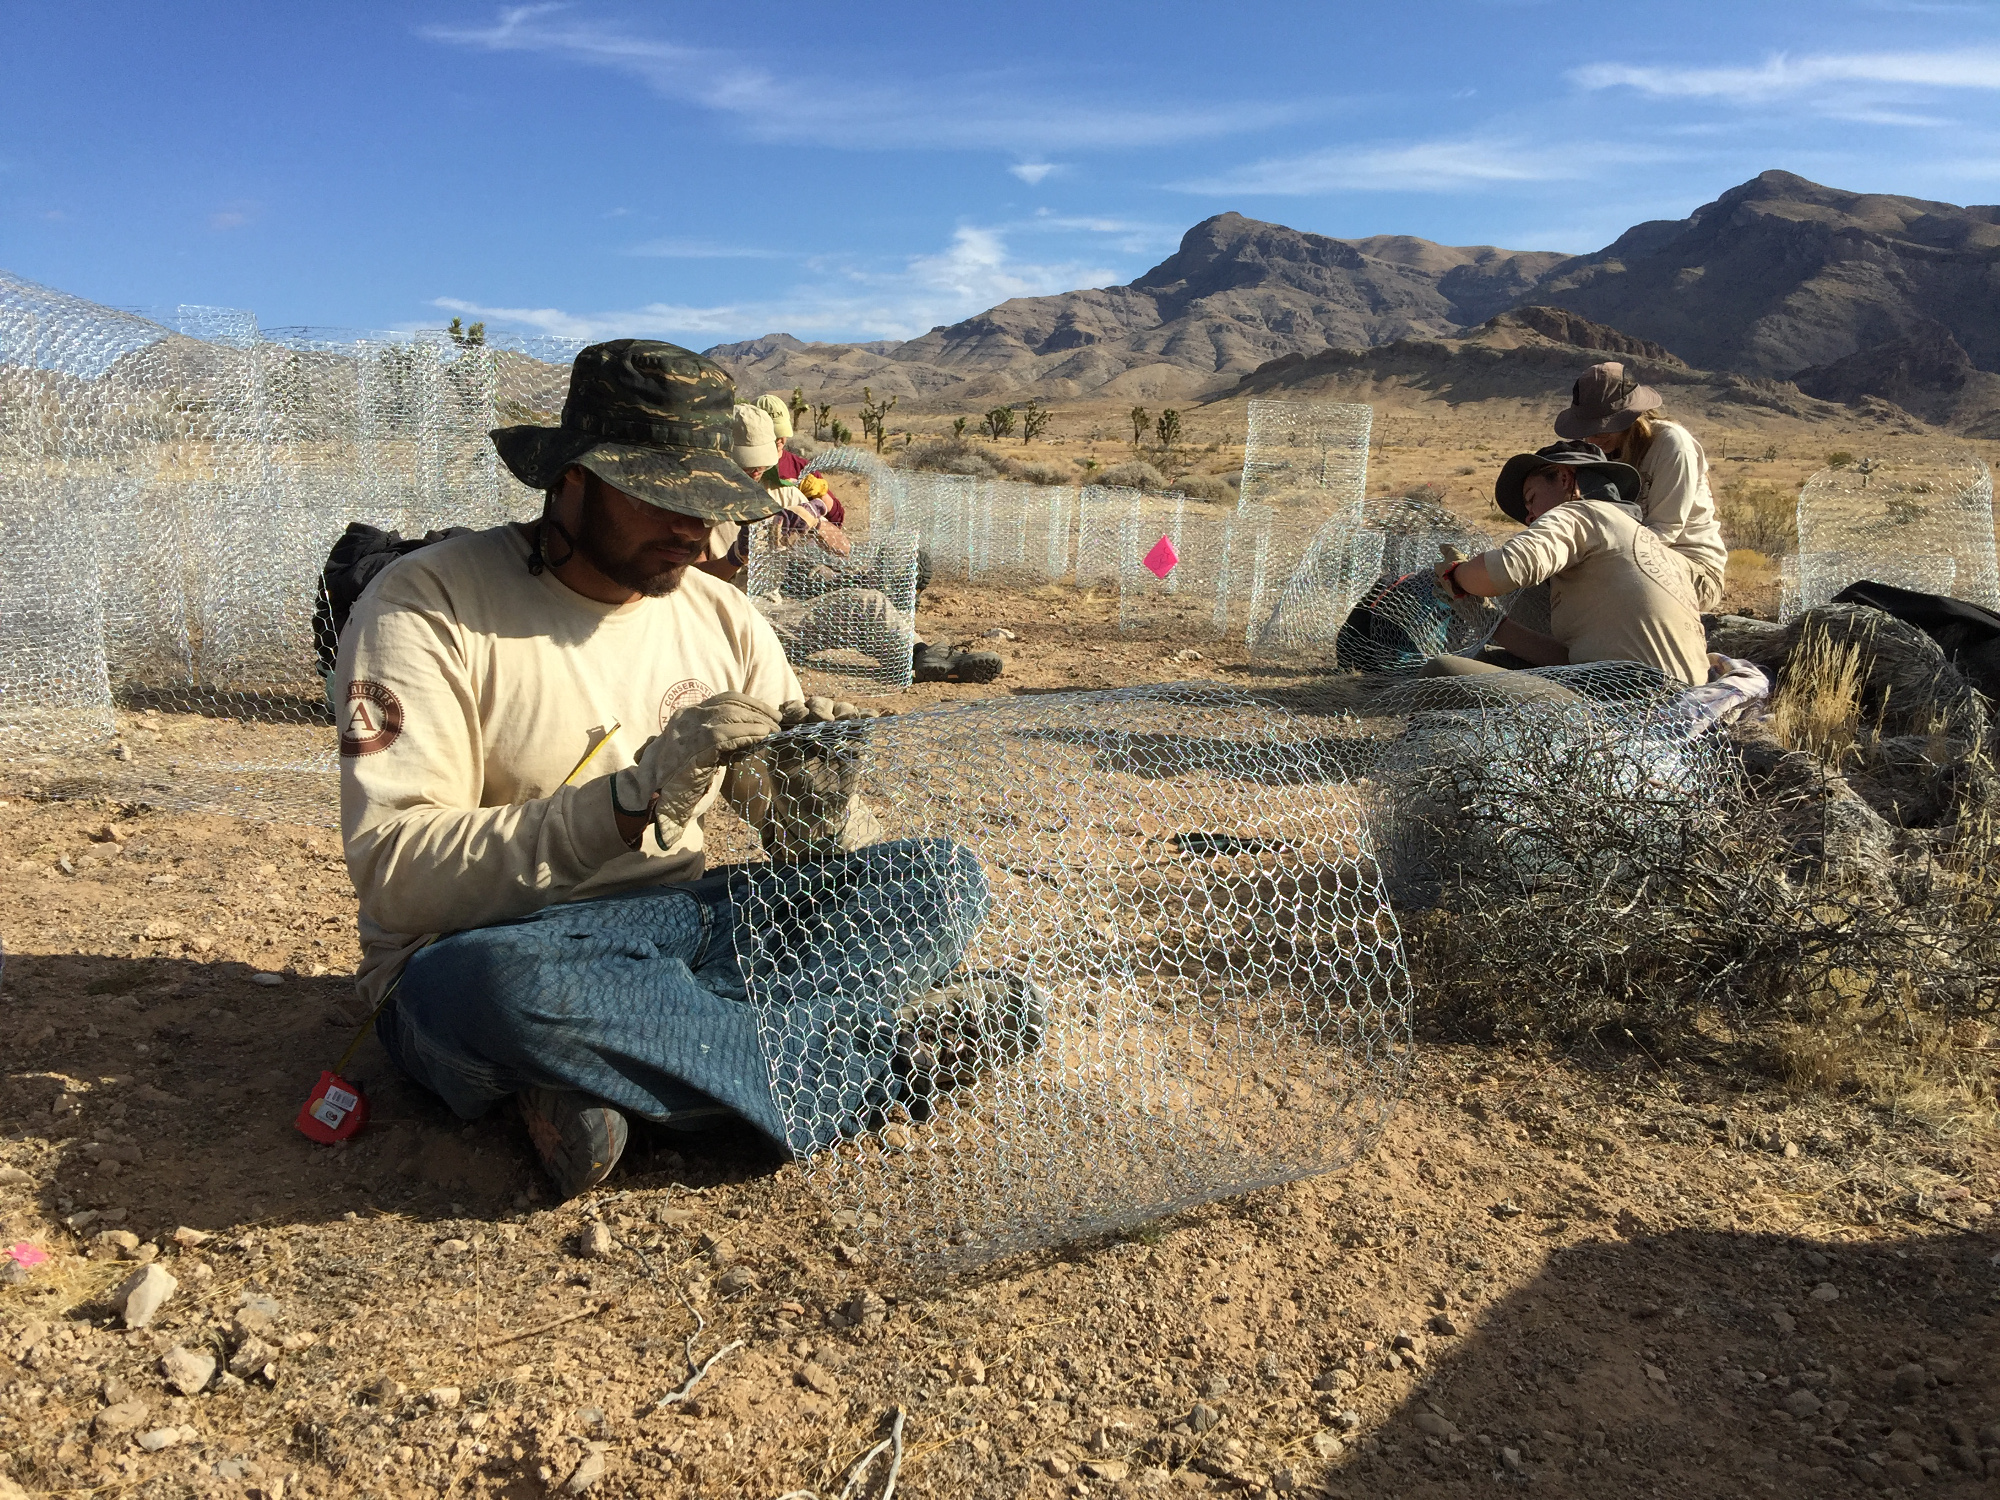 AmeriCorps volunteers construct wire mesh cages to protect new plants, part of a desert tortoise habitat improvement experiment underway in the Beaver Dam Wash National Conservation Area, Washington County, Utah, Nov. 4, 2016 | Photo by Christian Venhuizen, courtesy of the Bureau of Land Management, St. George News